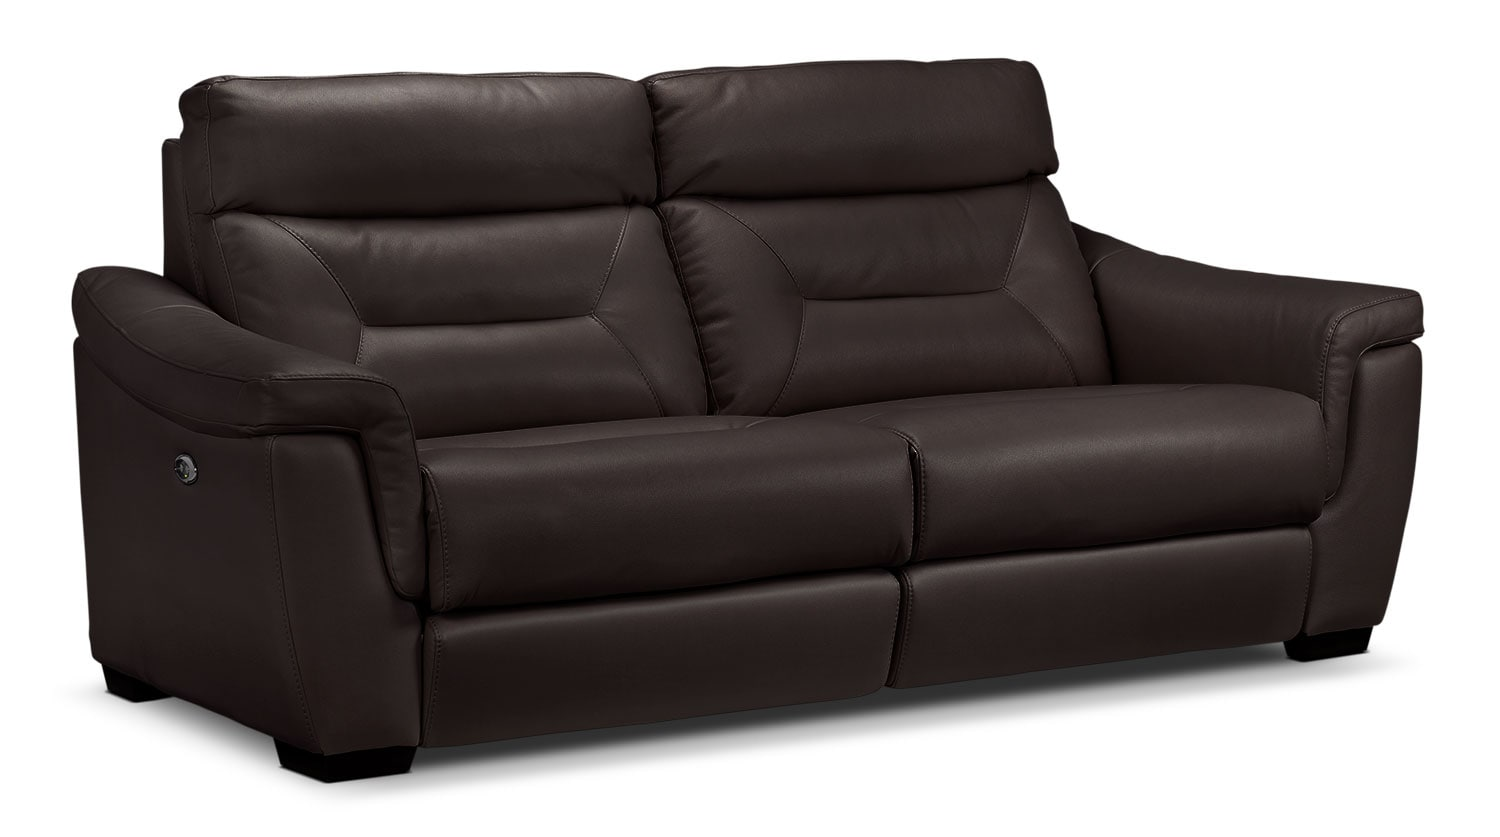 Living Room Furniture - Ralston Power Reclining Sofa - Walnut